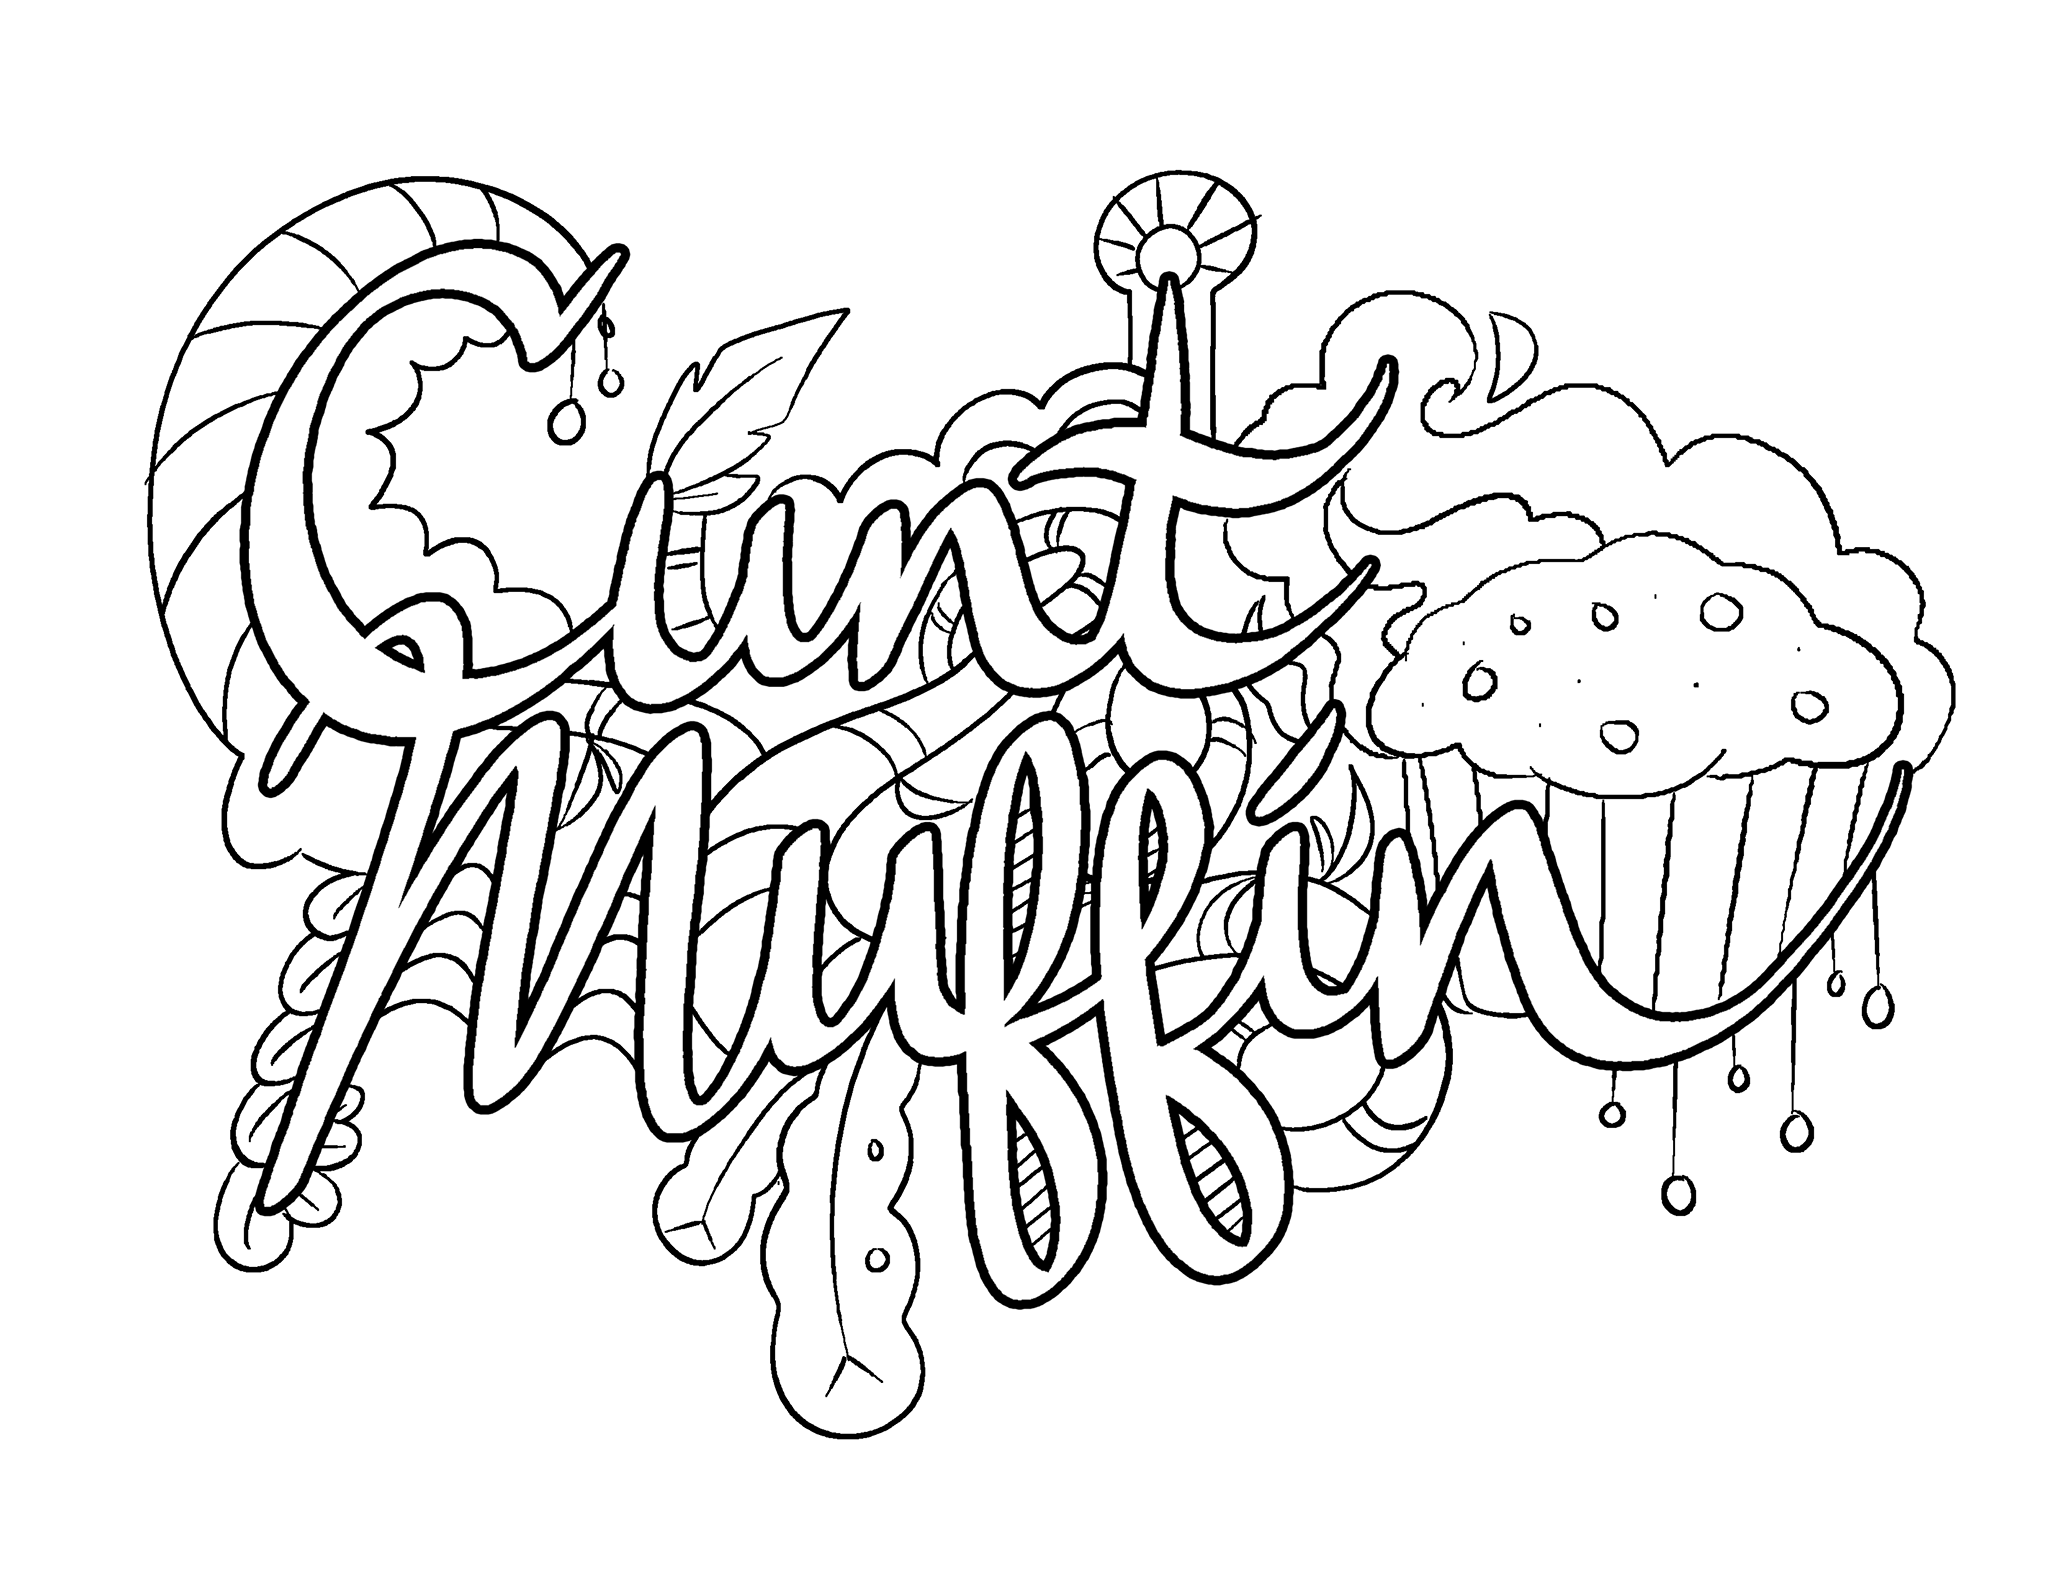 muffin coloring pages coloring page muffin holiday awesomeness pinterest coloring muffin pages